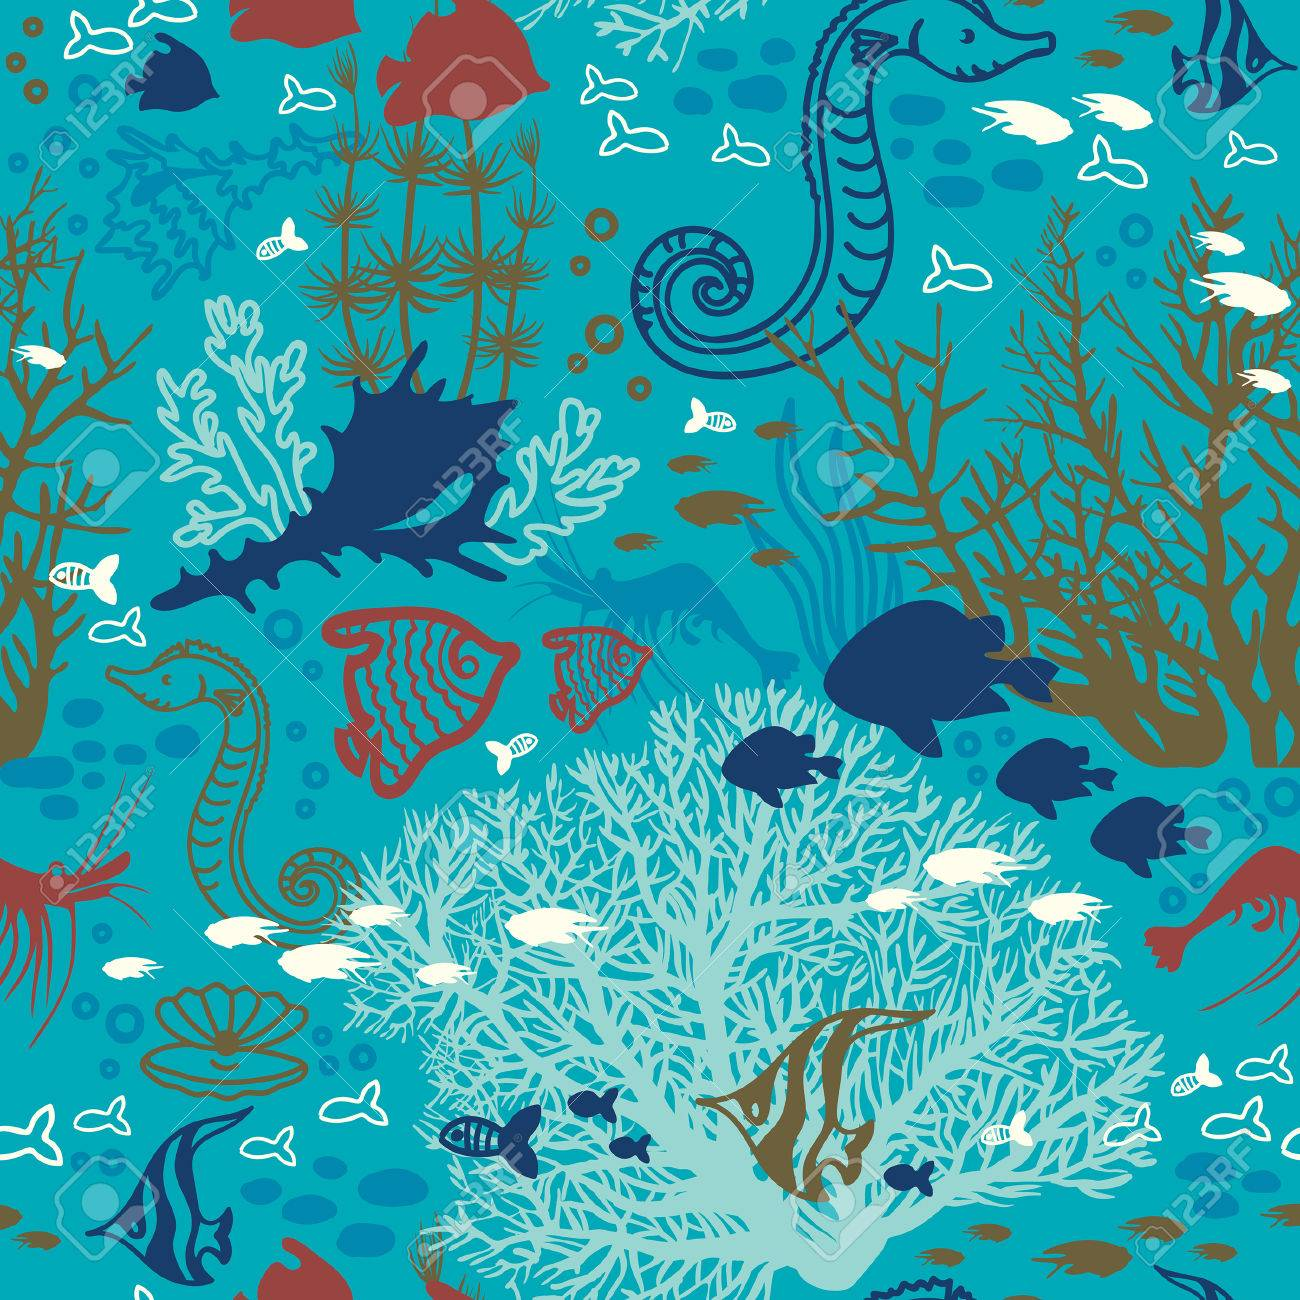 Cartoon Wallpaper With Coral Reef Fish And Underwater Creatures Seamless Pattern Illustration Stock